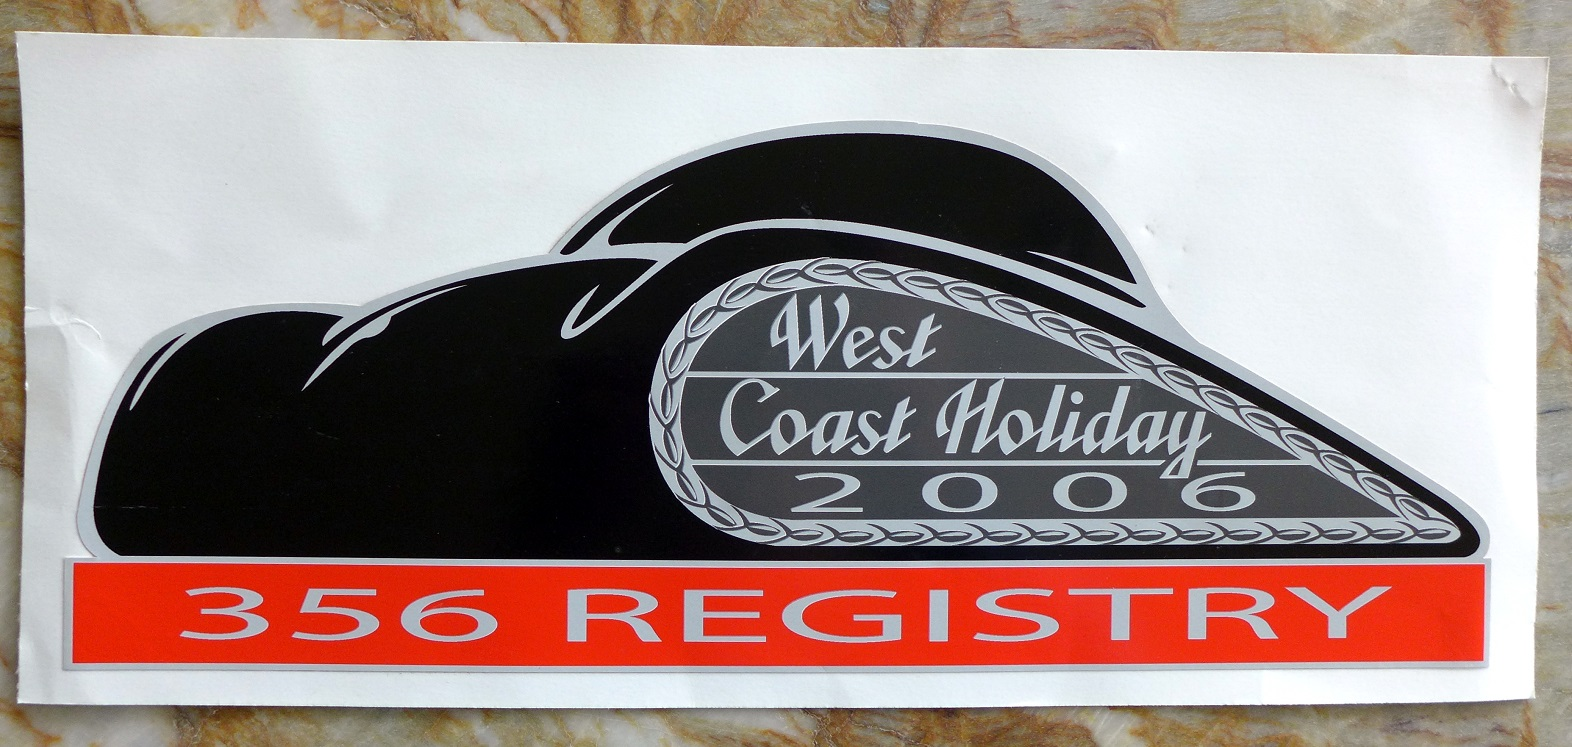 West Coast Holiday 2006 static cling decal